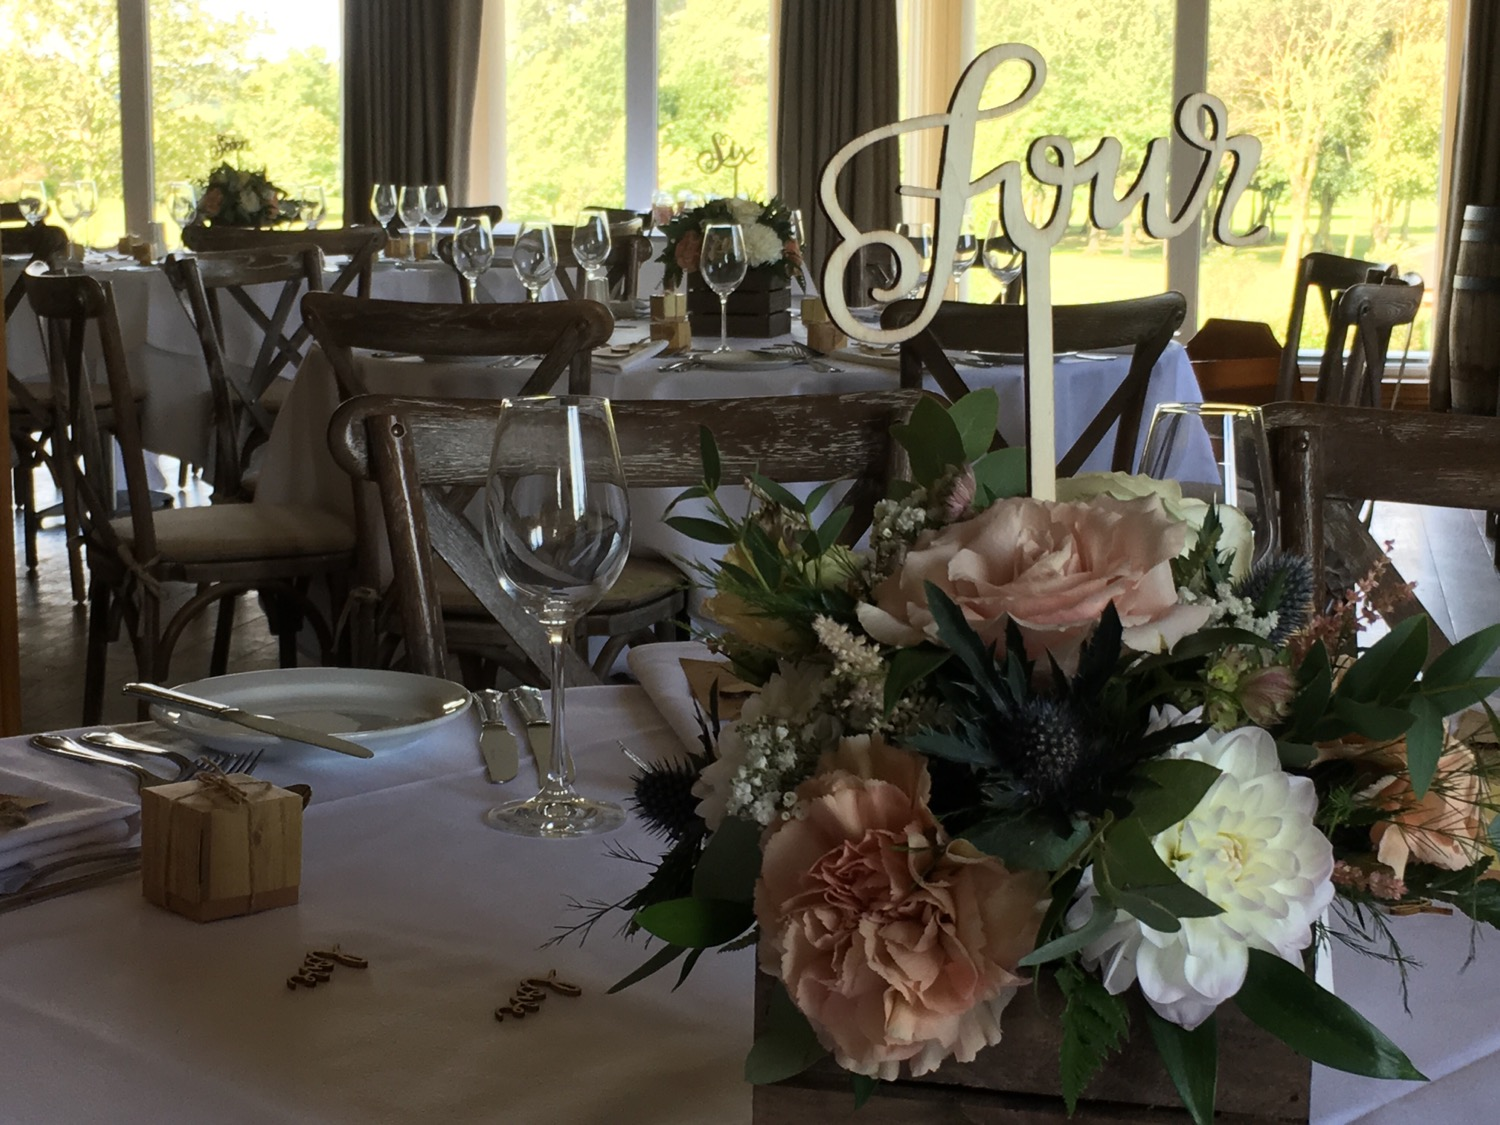 Rustic crate table centre